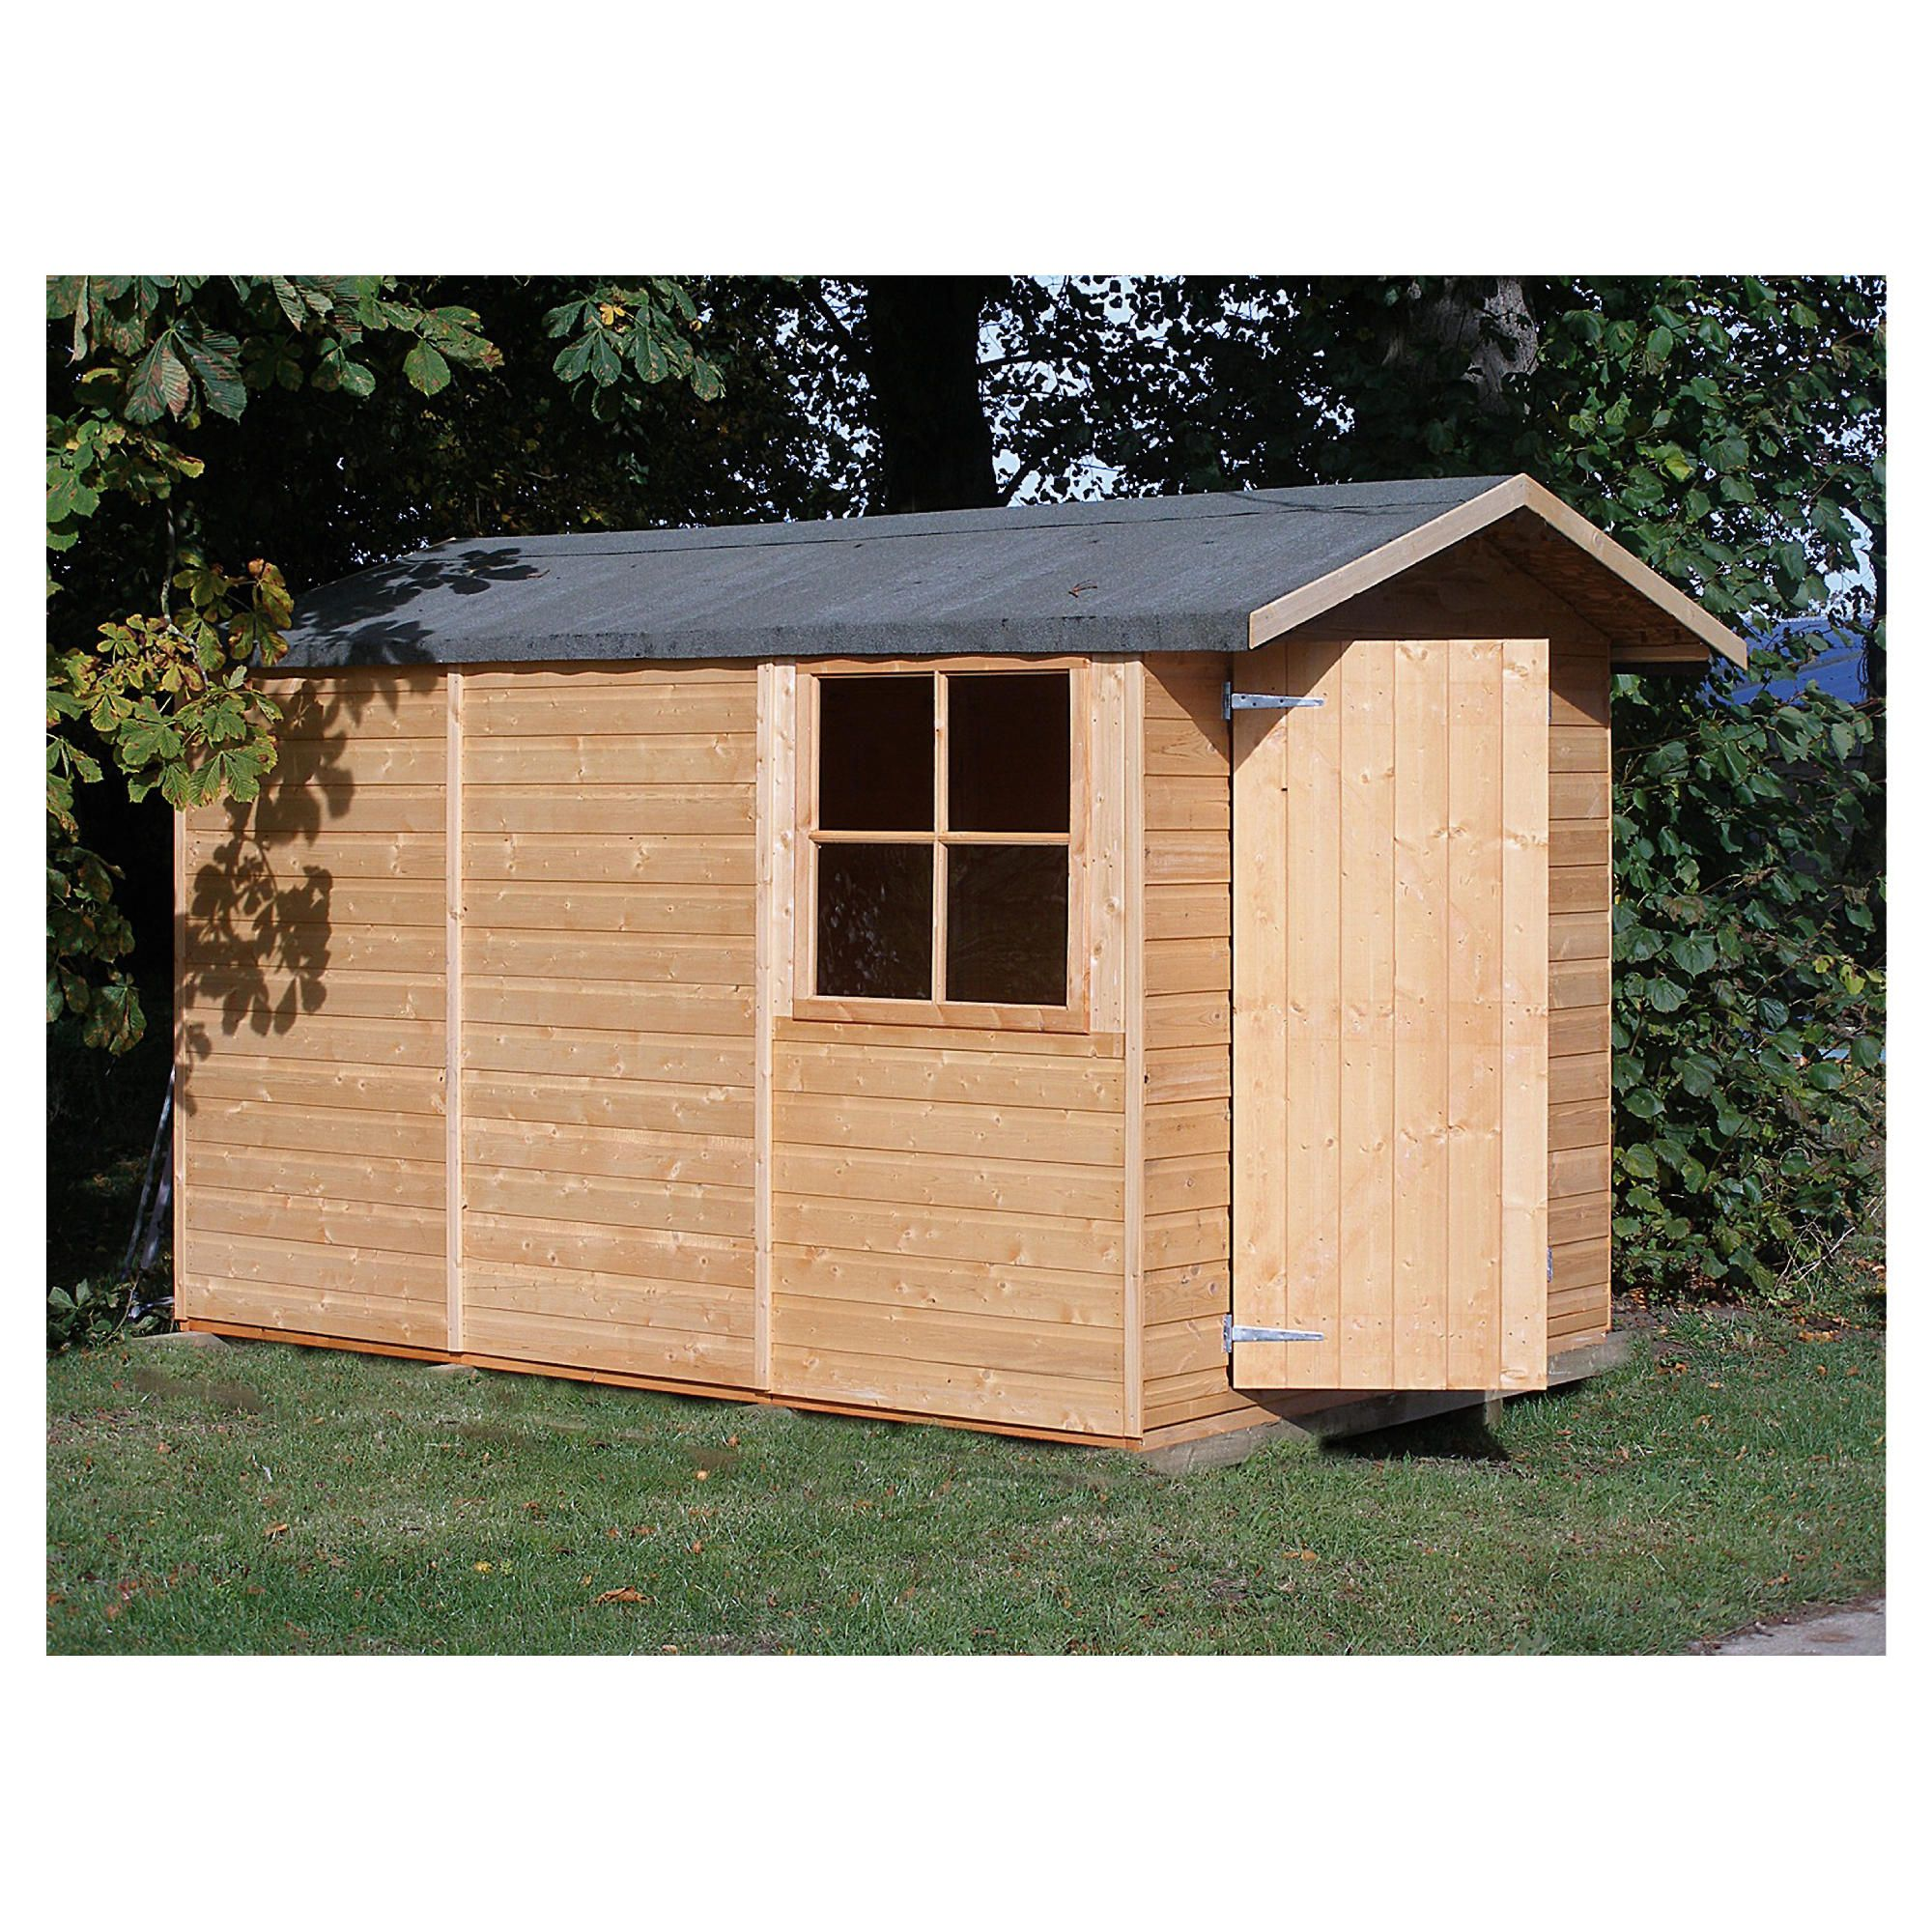 Finewood guernsey apex double door shiplap 10x7 for Garden shed tesco